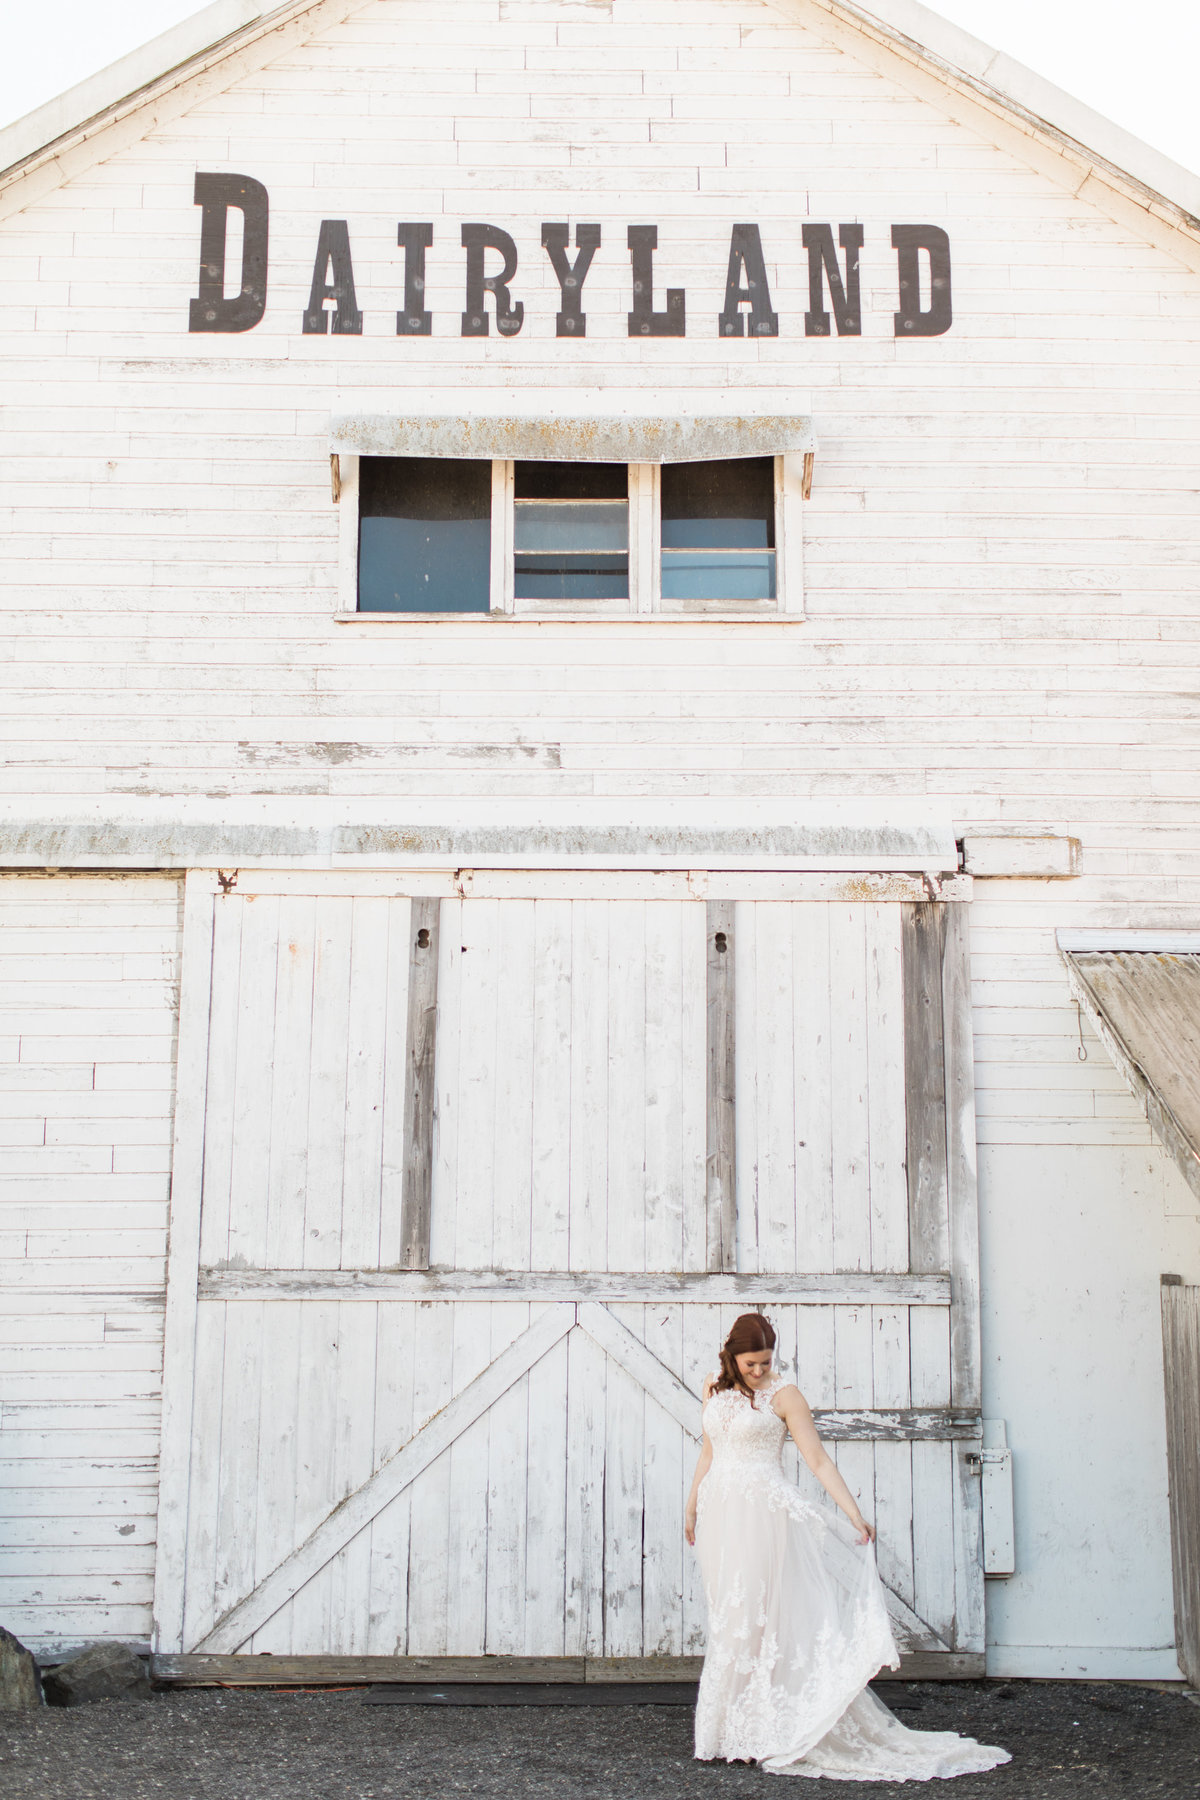 Joanna_Monger_Photography_Dairyland_Snohomish_Kate-1